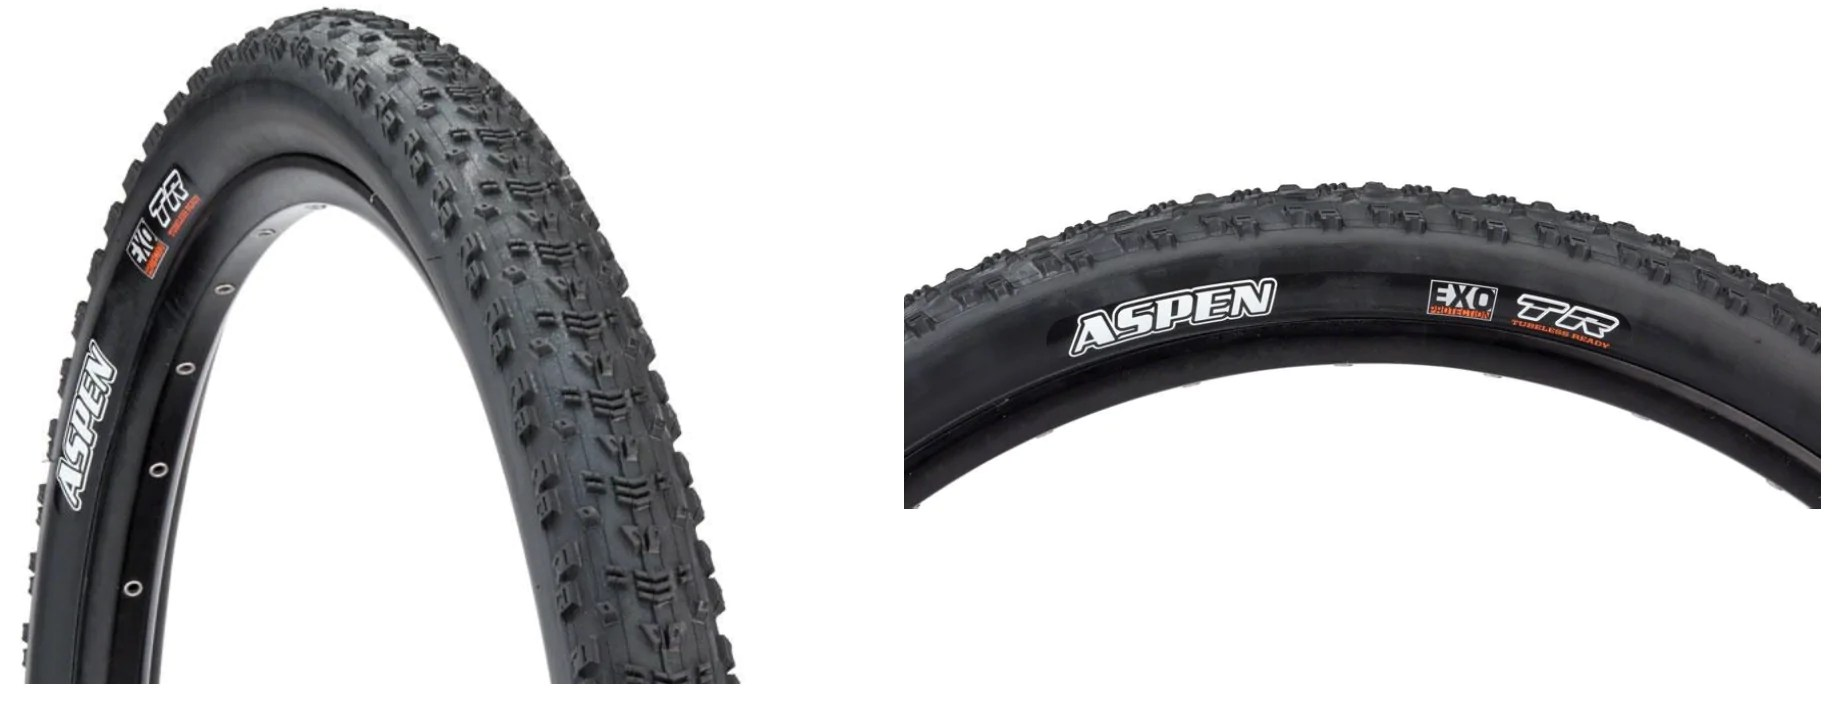 Maxxis Aspen Tire: Product Review | Worldwide Cyclery